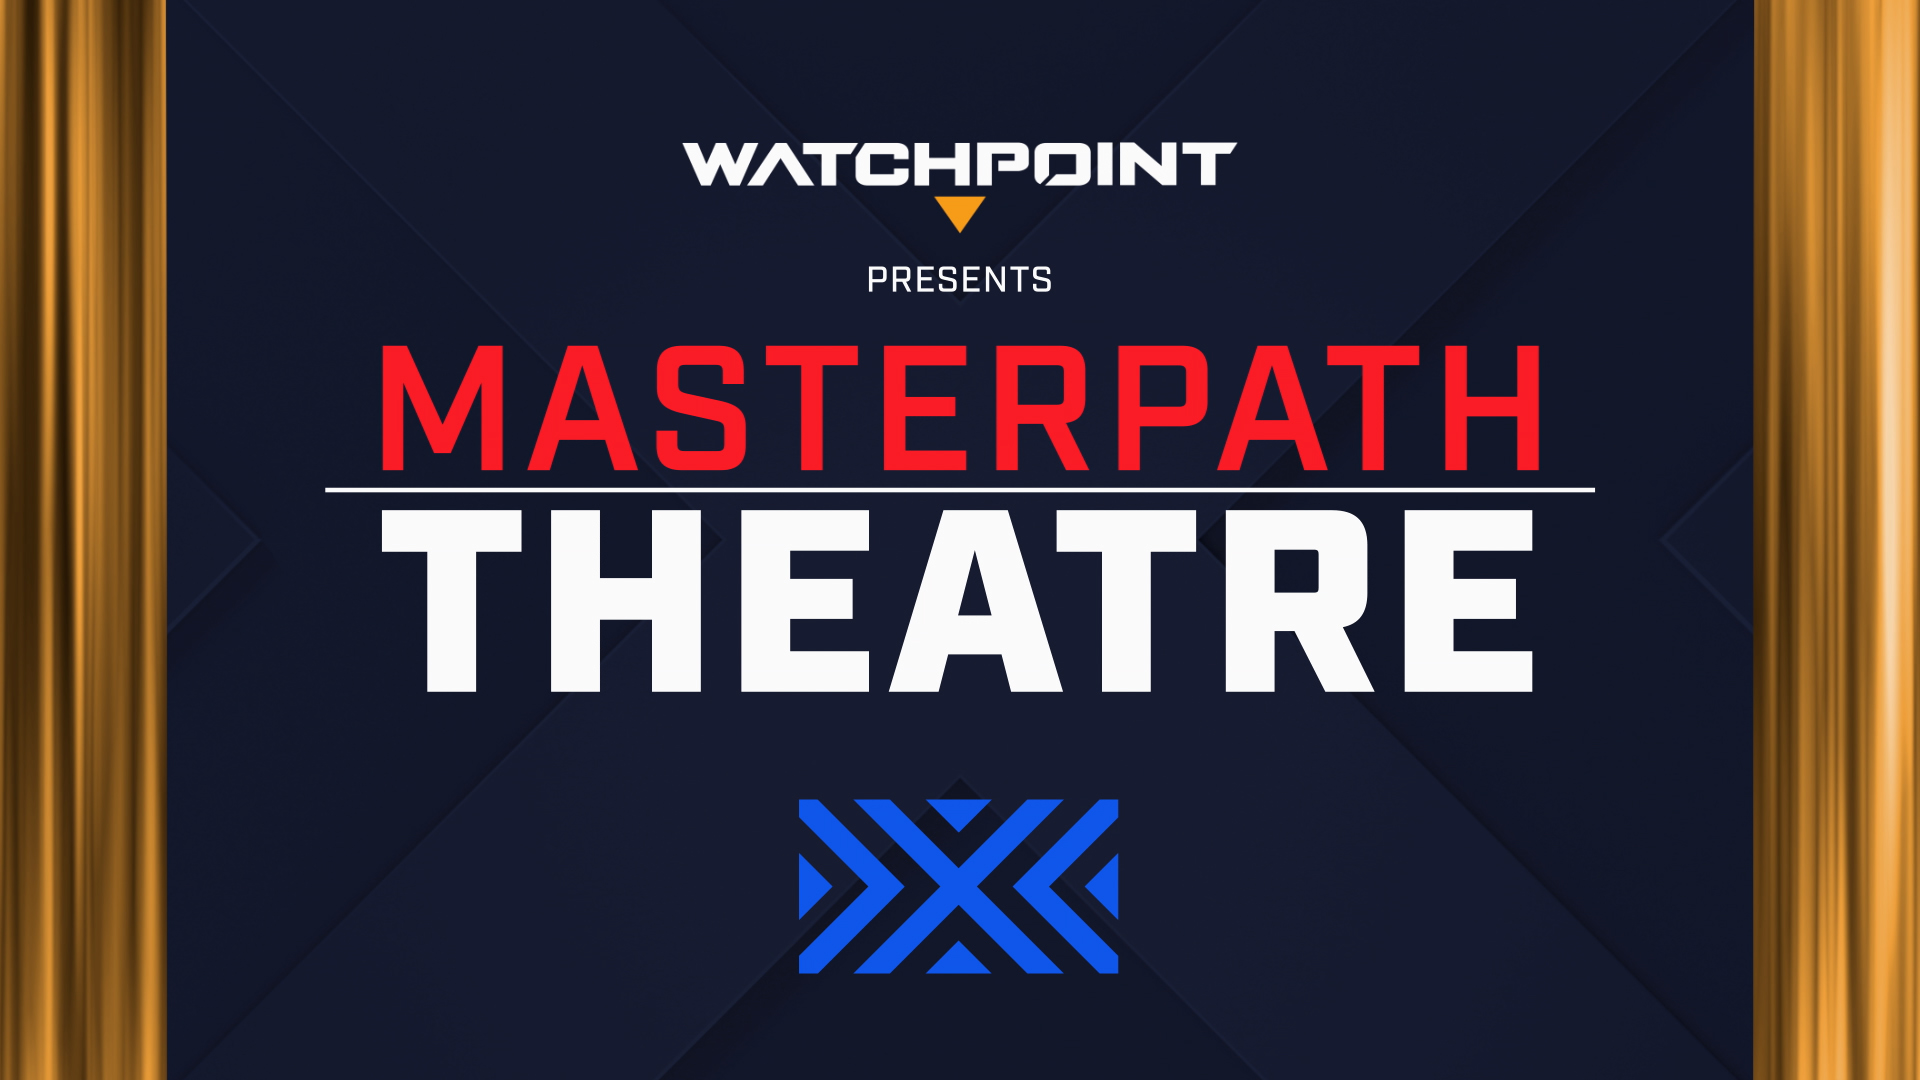 Watchpoint presents MasterPath Theatre: The New York Excelsior